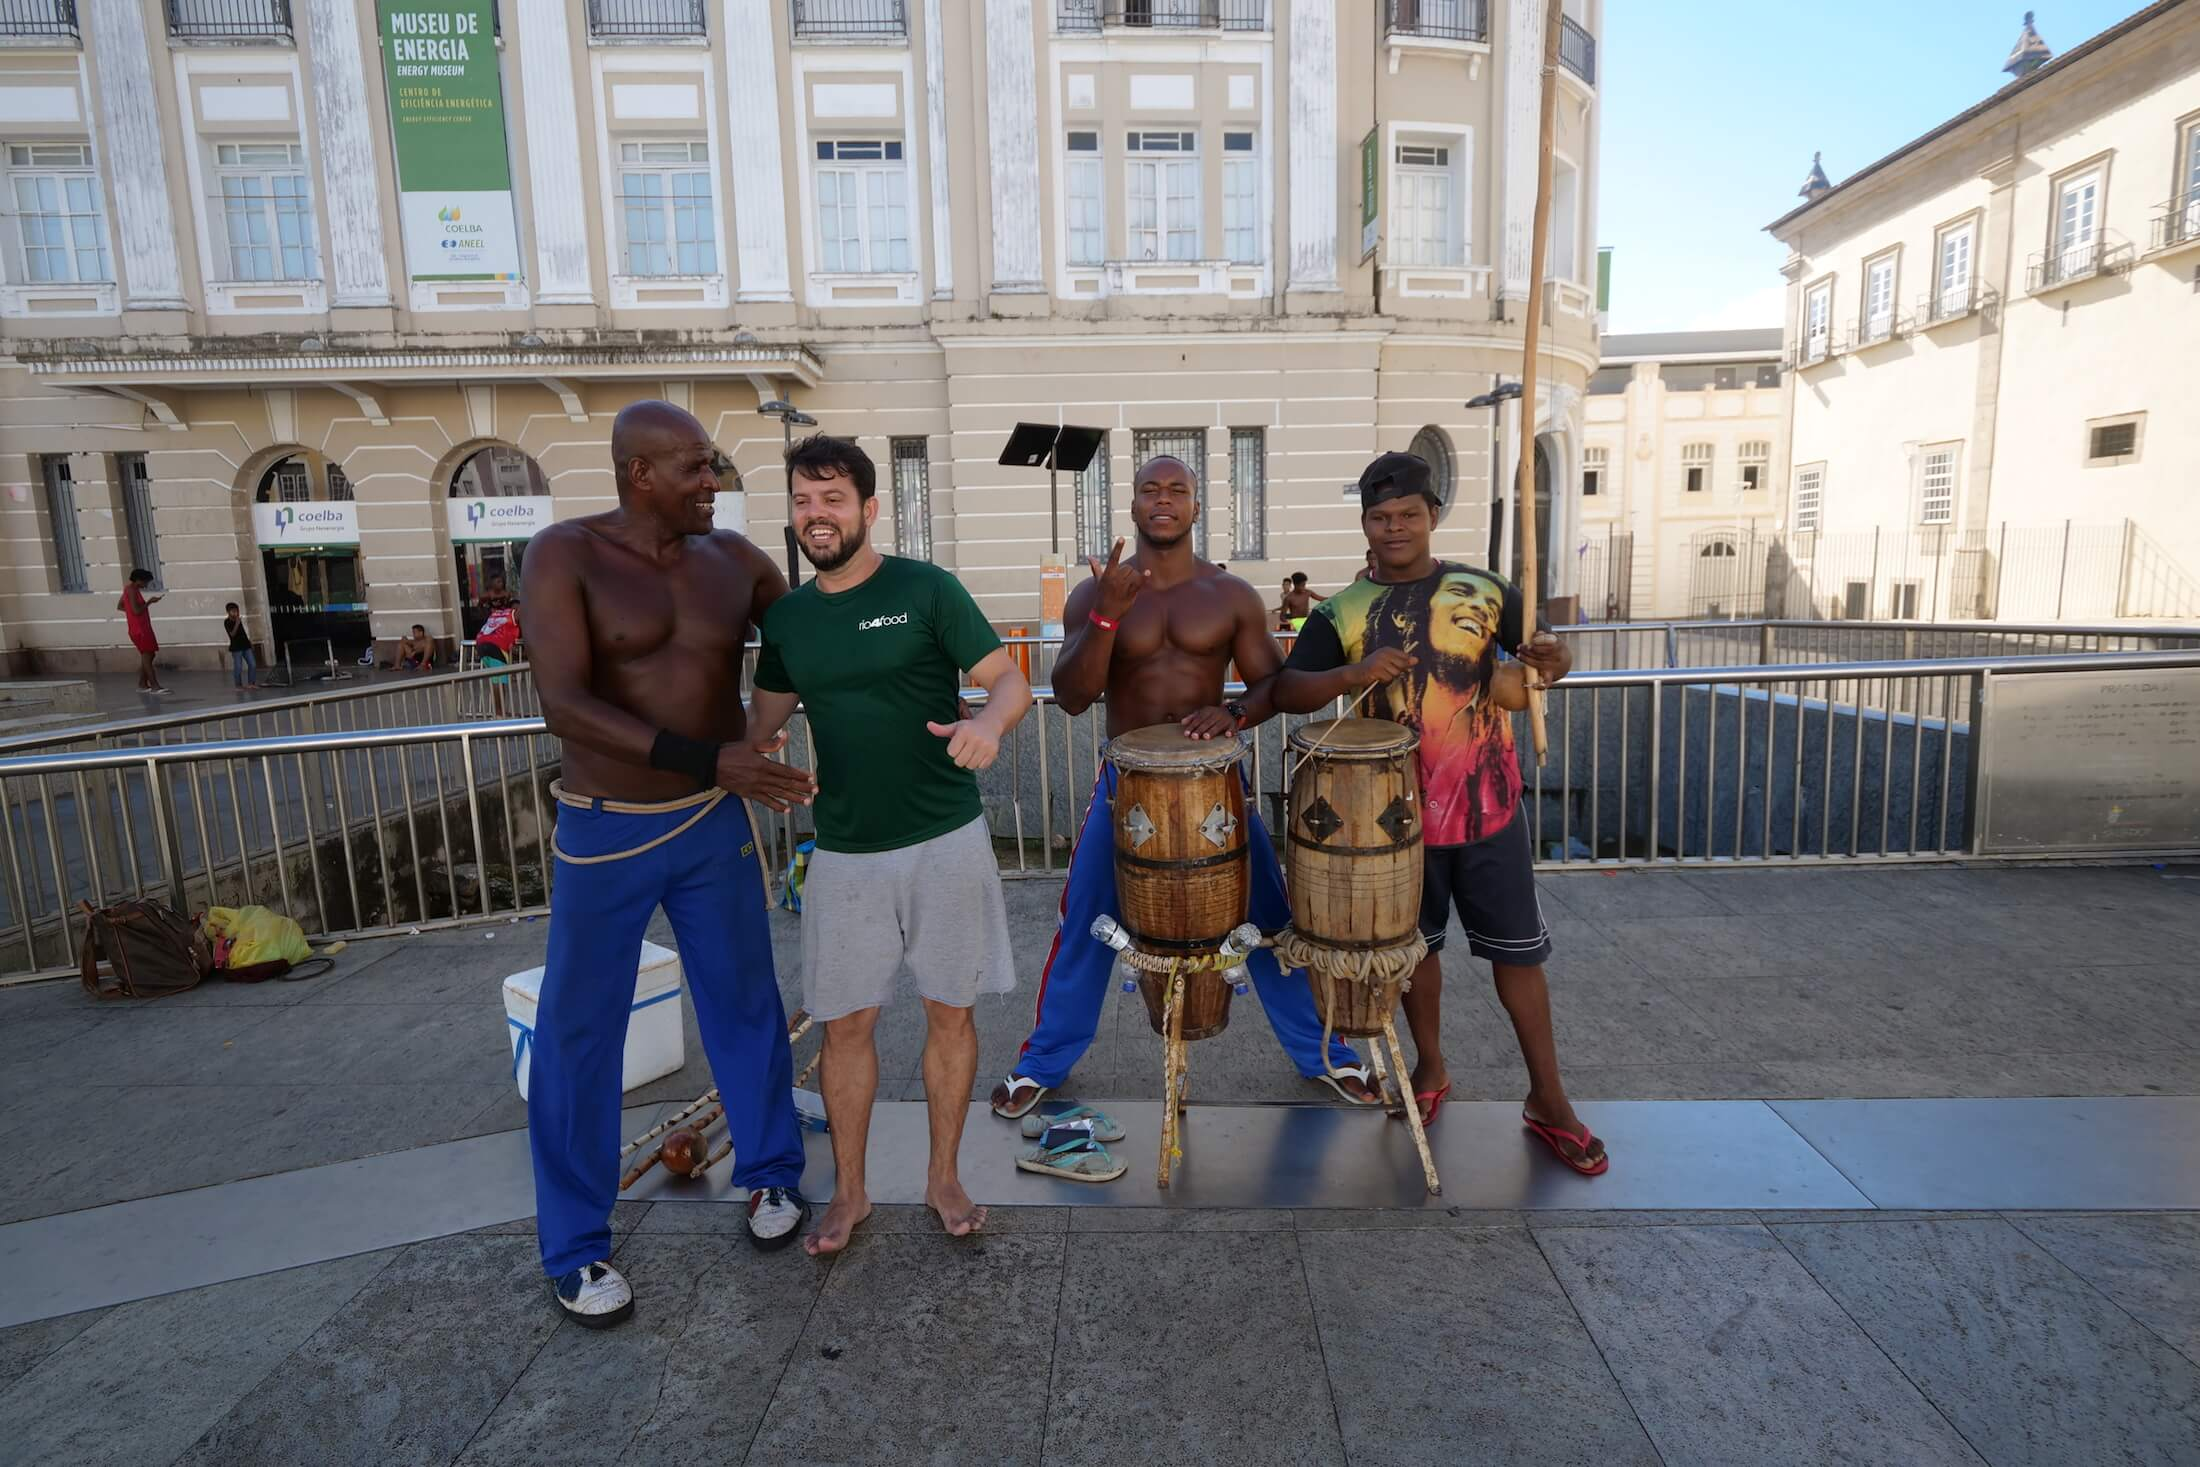 This friendly (and amazingly fit) group of guys keeping up their Capoeira skills